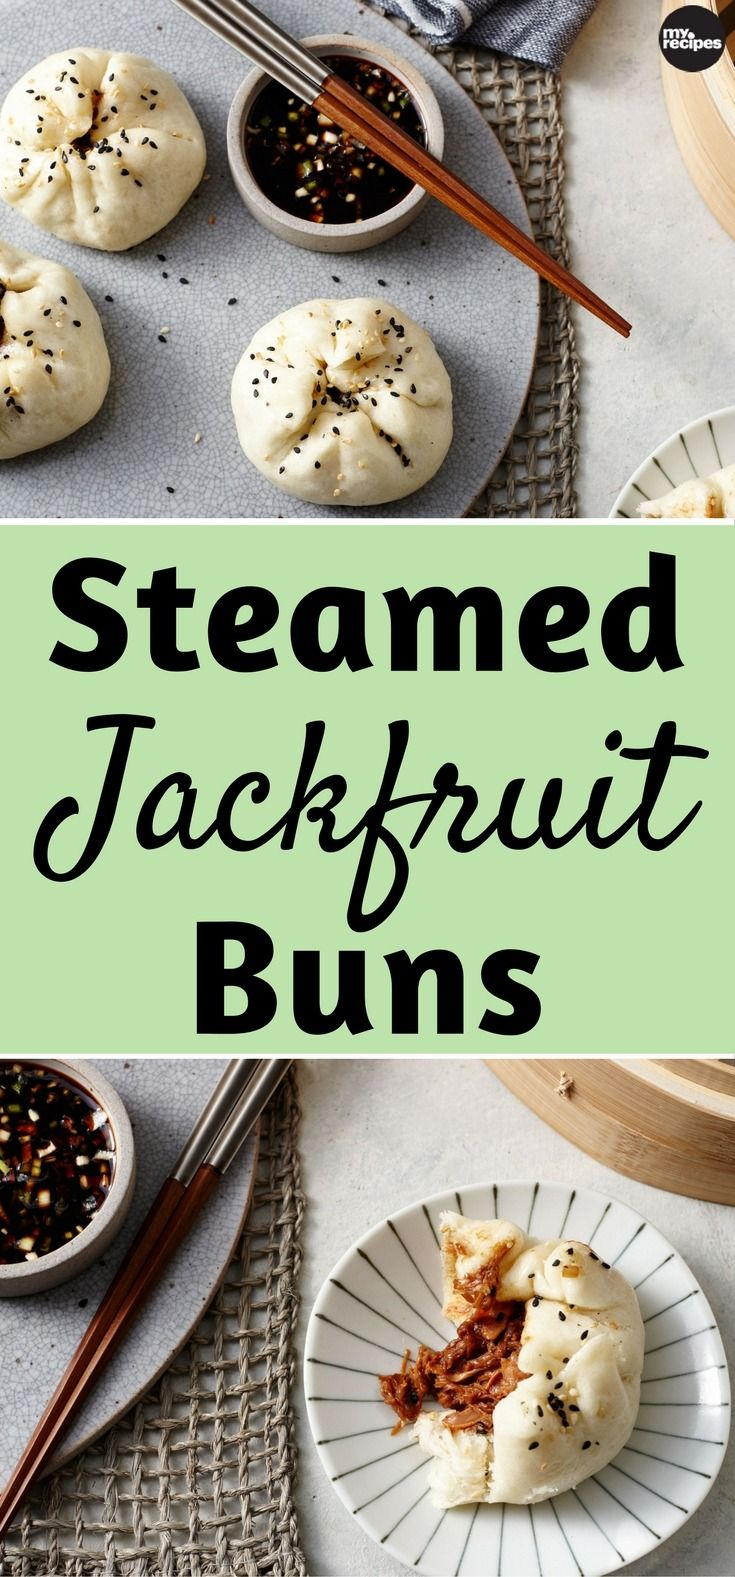 These vegan buns are just like Char Siu Pork Bao (barbecue pork-filled buns) that you find at dim sum. Not only is this an amazing vegan version of the dish, it's an amazing version of the dish period. The filling for the bao is sweet and tangy, and the dough is pillowy and soft. Jackfruit can be found at any Asian market. | MyRecipes